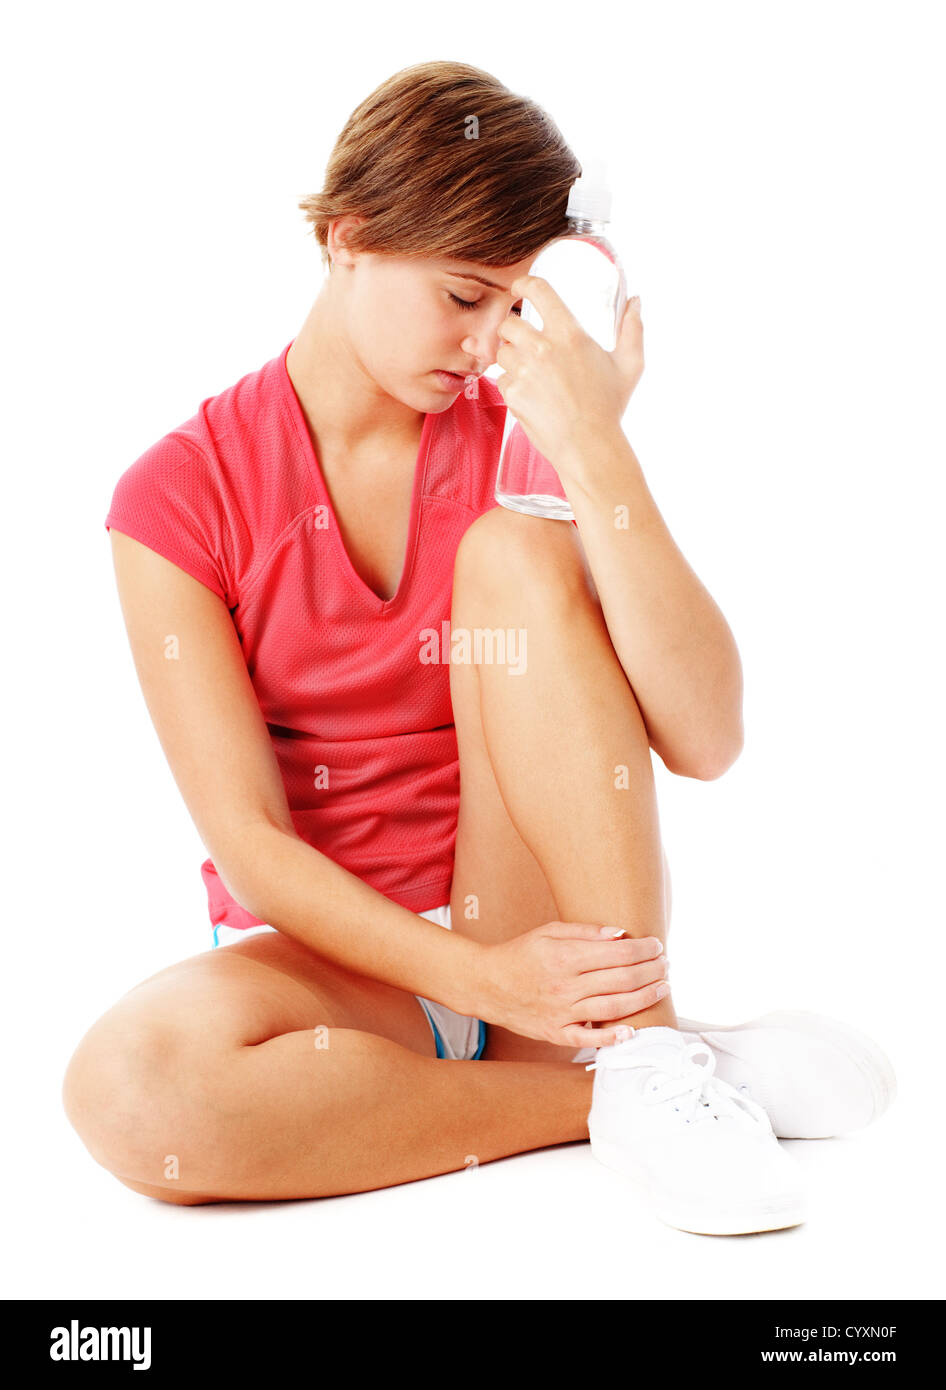 Young woman resting after excercise, from a complete series of photos. - Stock Image